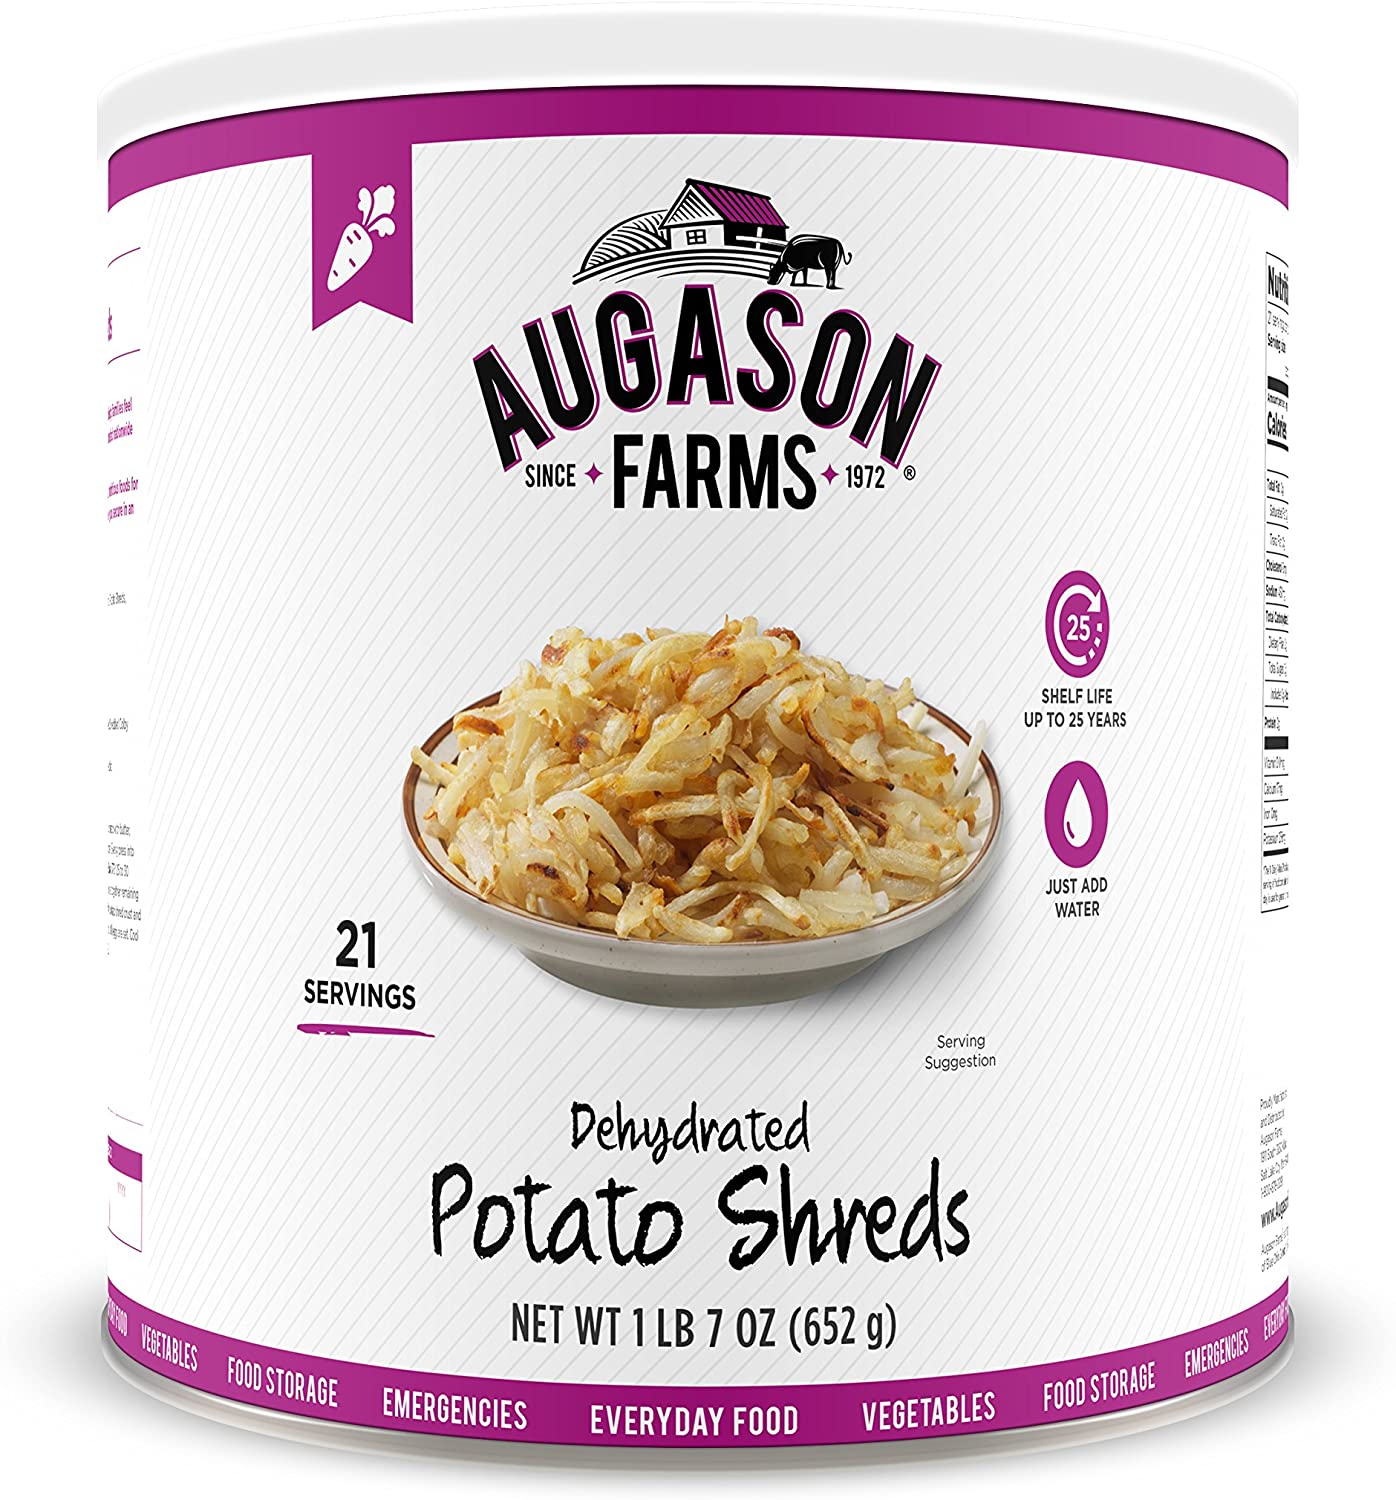 Augason Farms Dehydrated Potato Shreds 1 lb 7 oz No. 10 - Amazon - $8.14